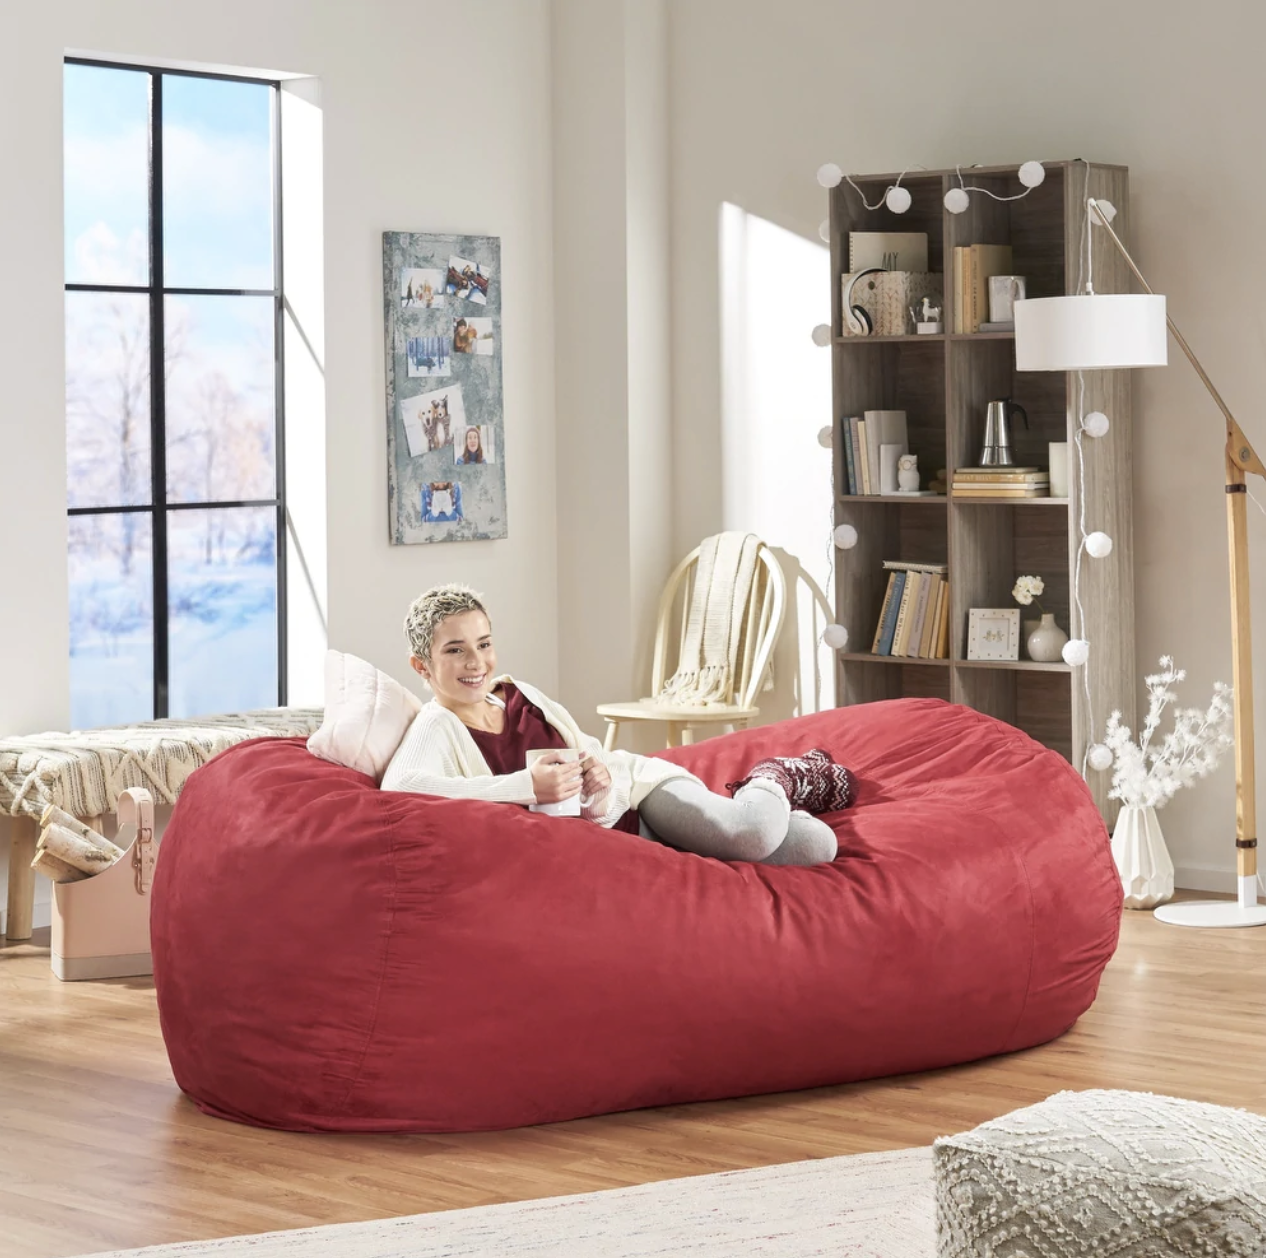 An adult laying down in the large bean bag chair